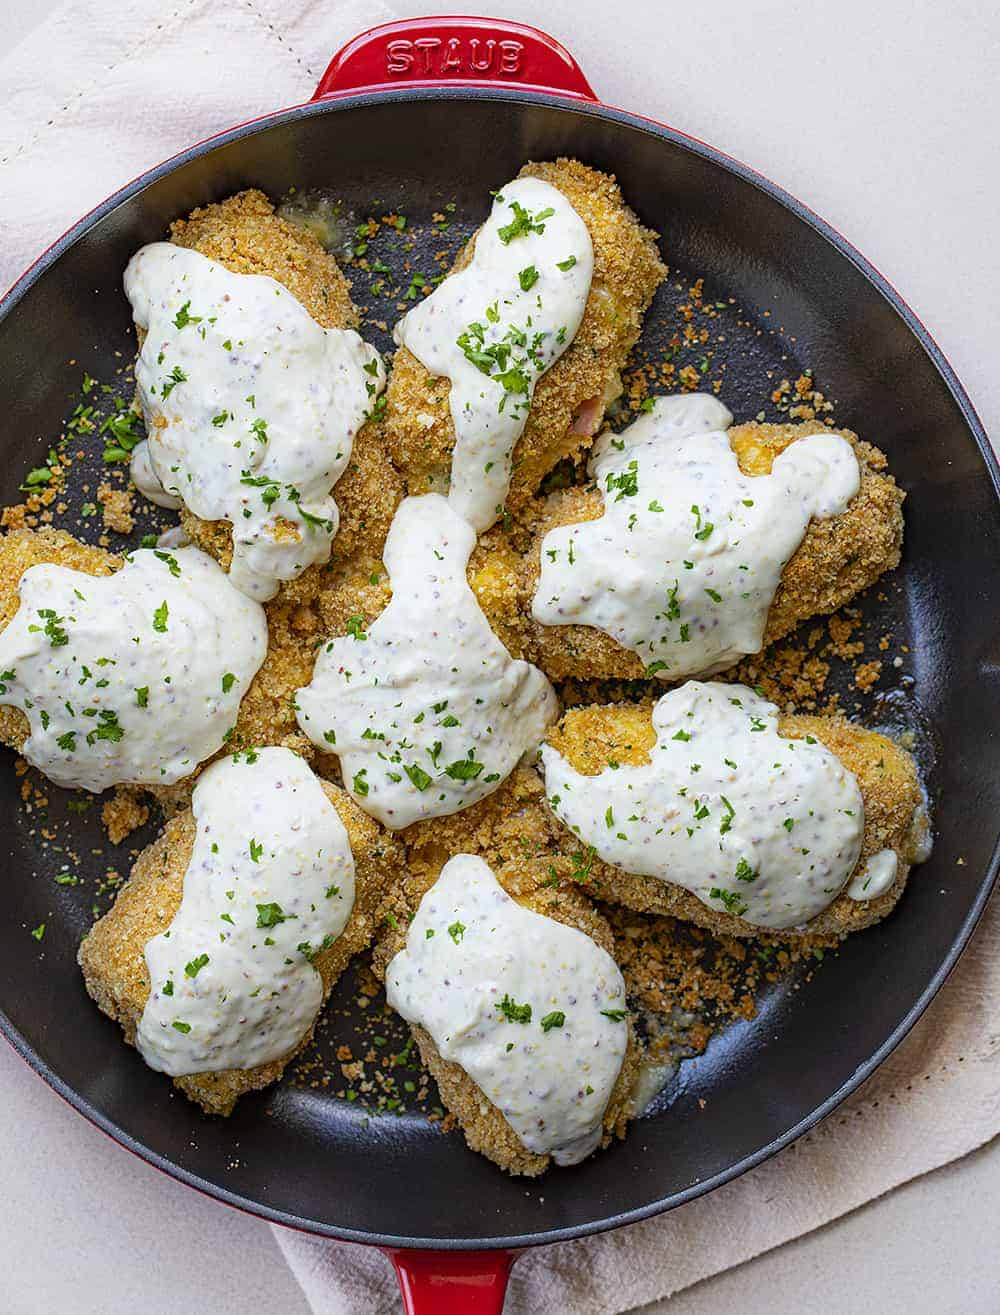 Overhead view of Baked Chicken Cordon Bleu in Red Skillet